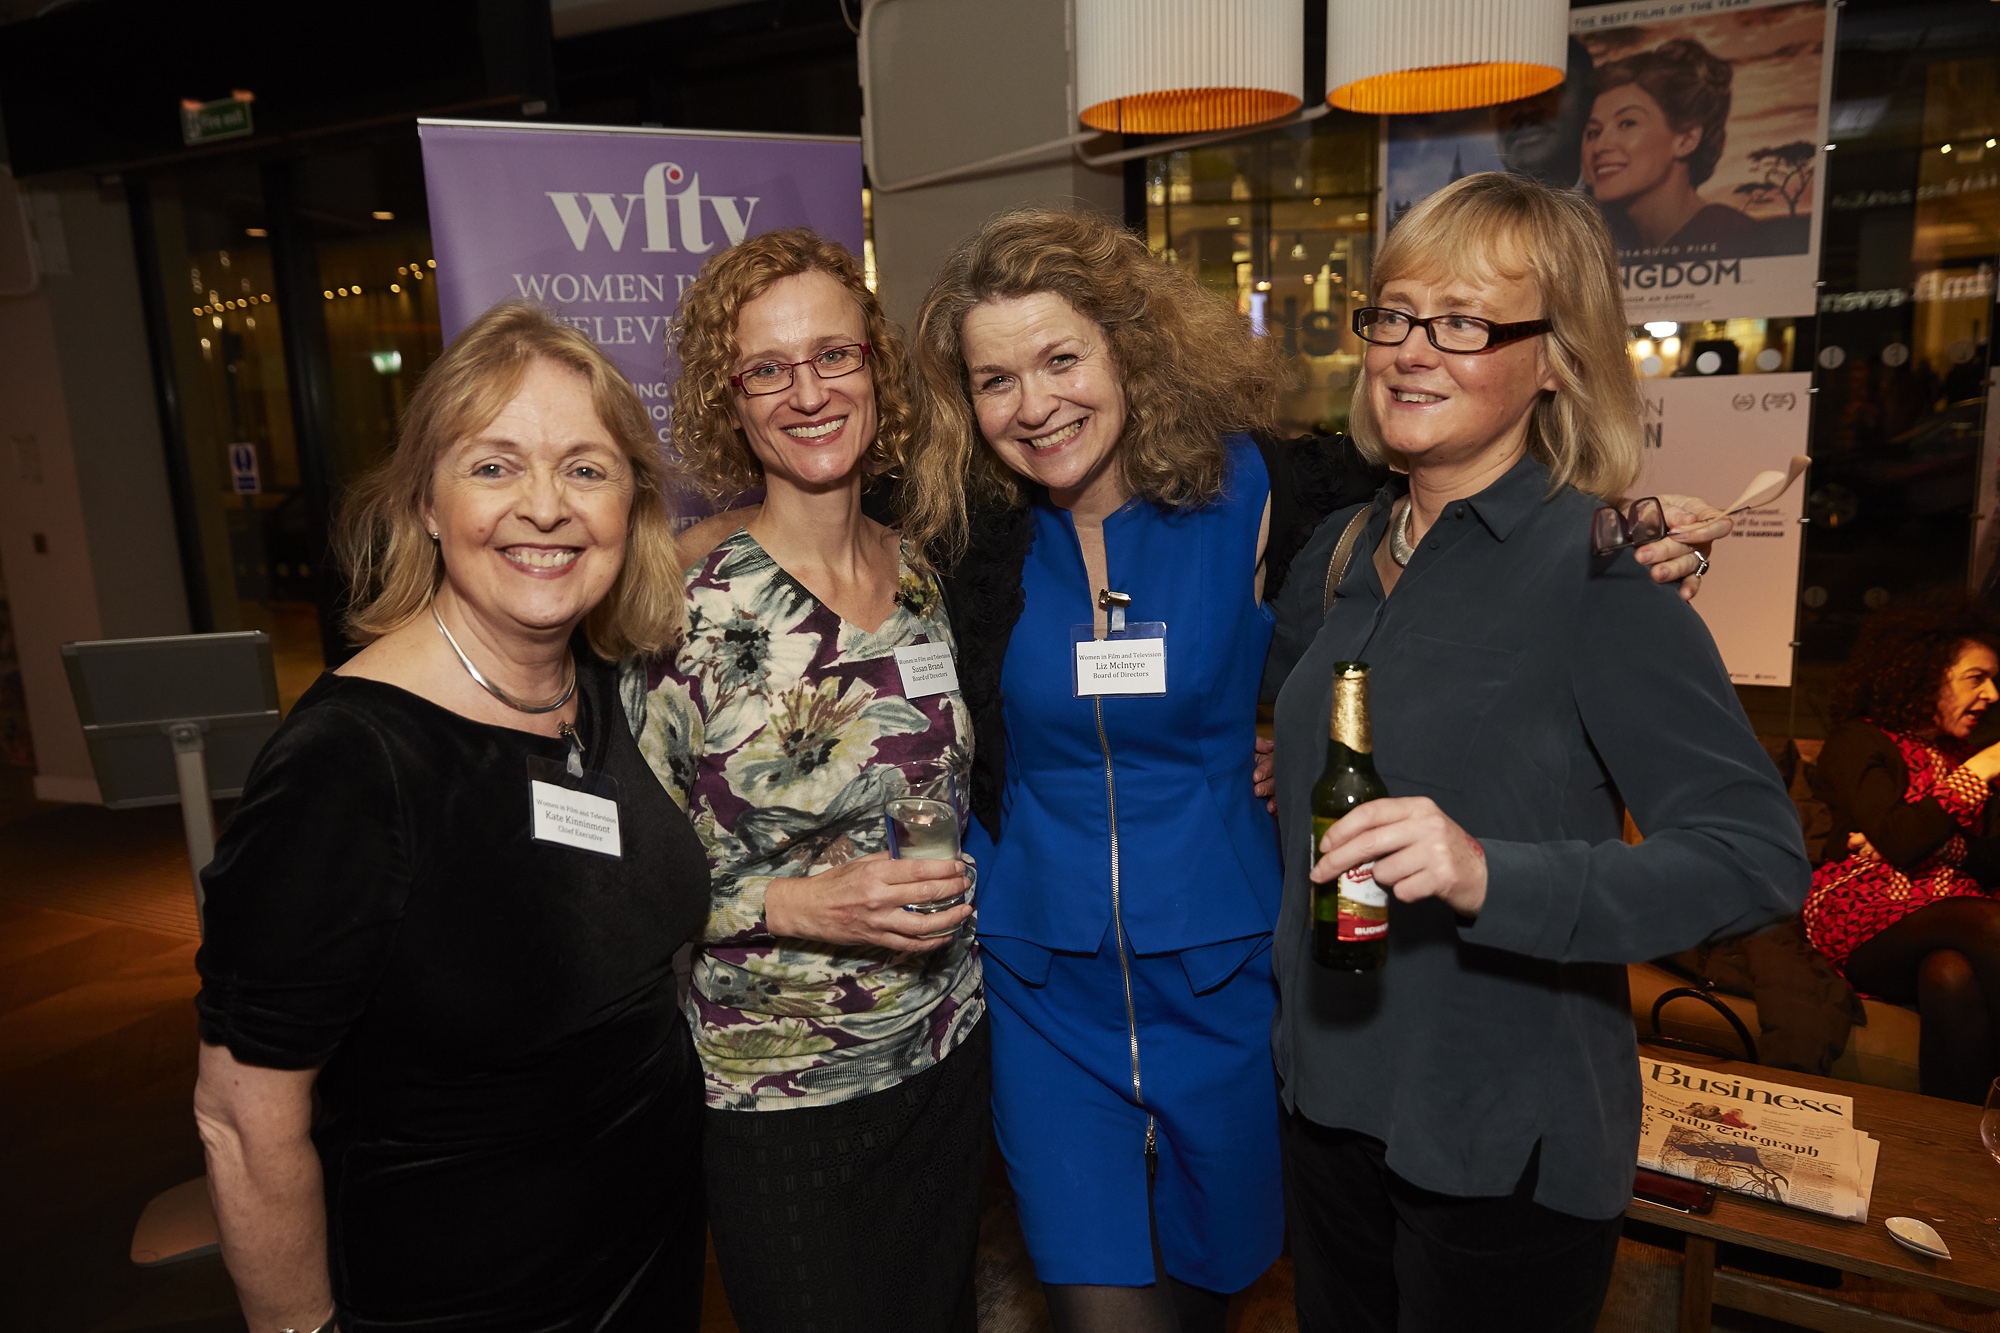 wftv-drinks-party-event-photographer-london.jpg